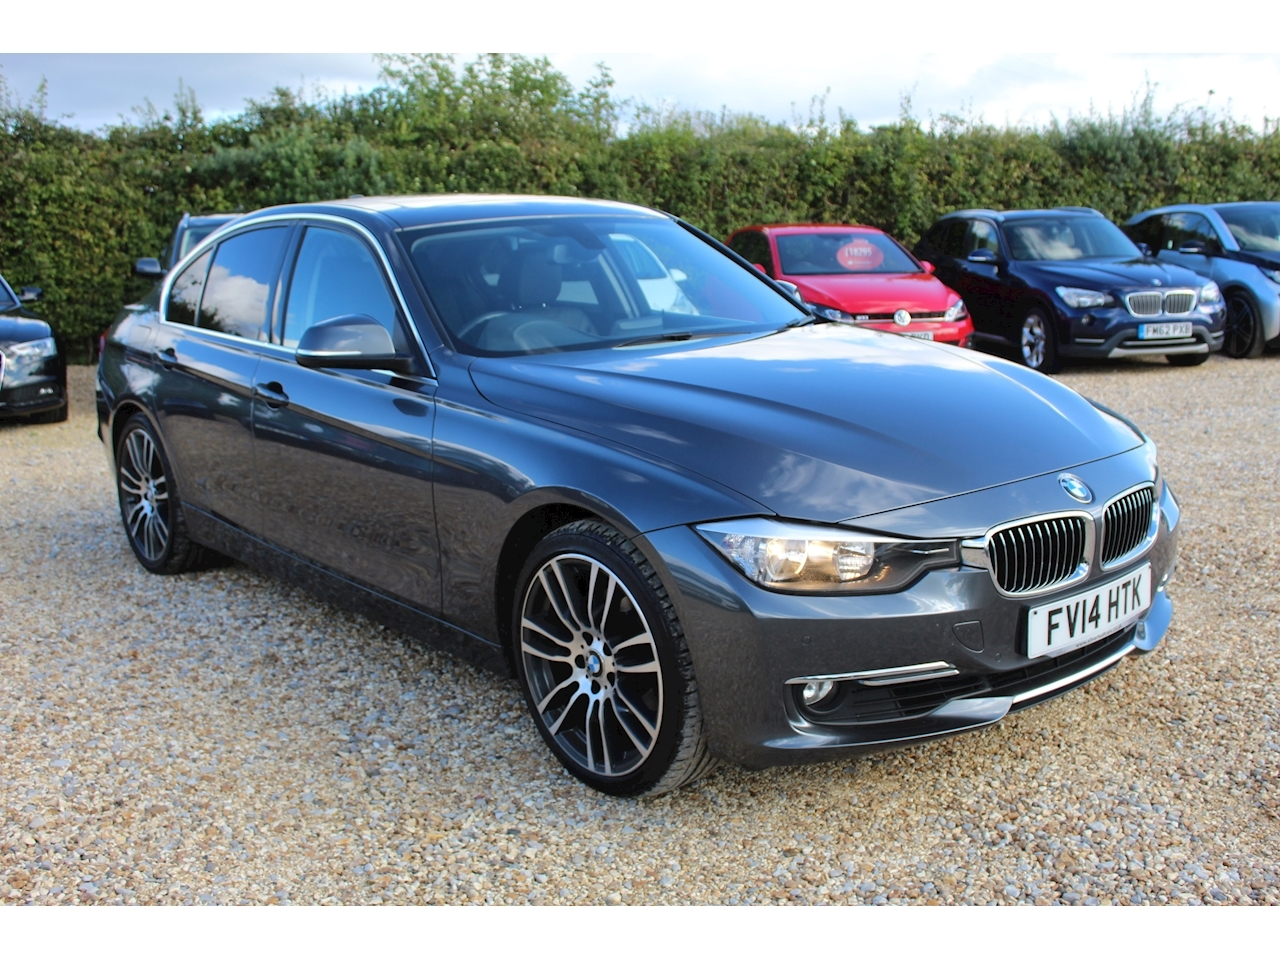 3 Series 330d xDrive Luxury Saloon 3.0 Automatic Diesel